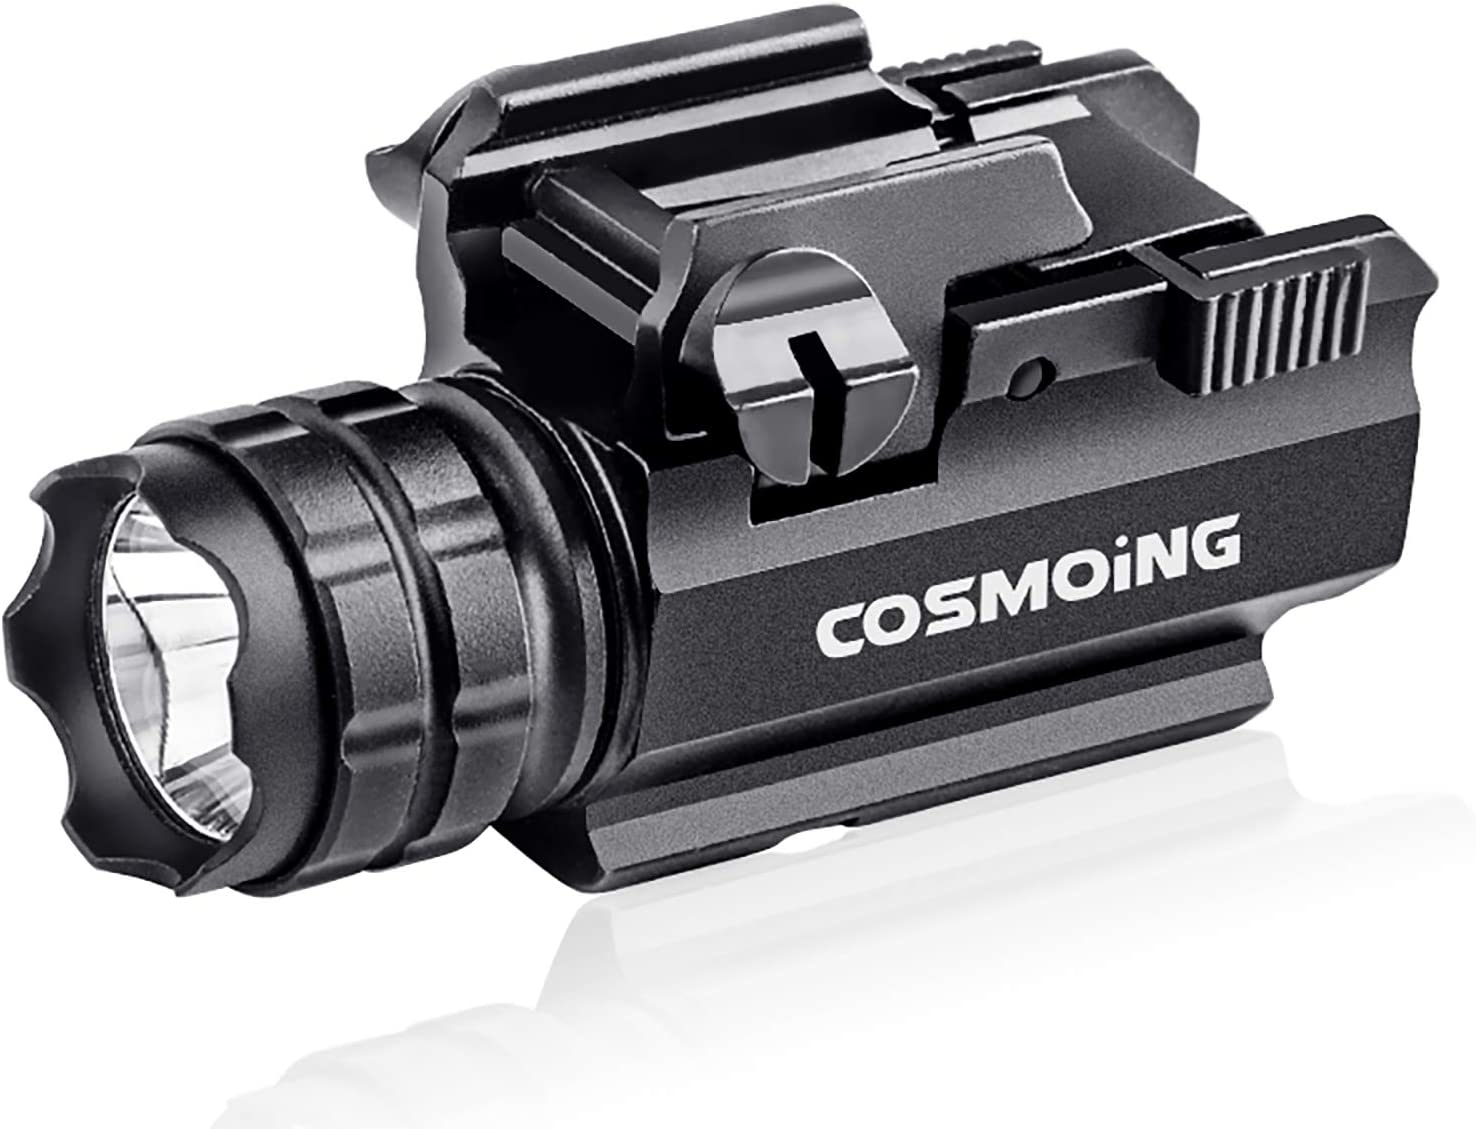 COSMOING Gun Max 43% OFF Flashlight Compact Tactical Outlet sale feature LED with Mounted Rail Q